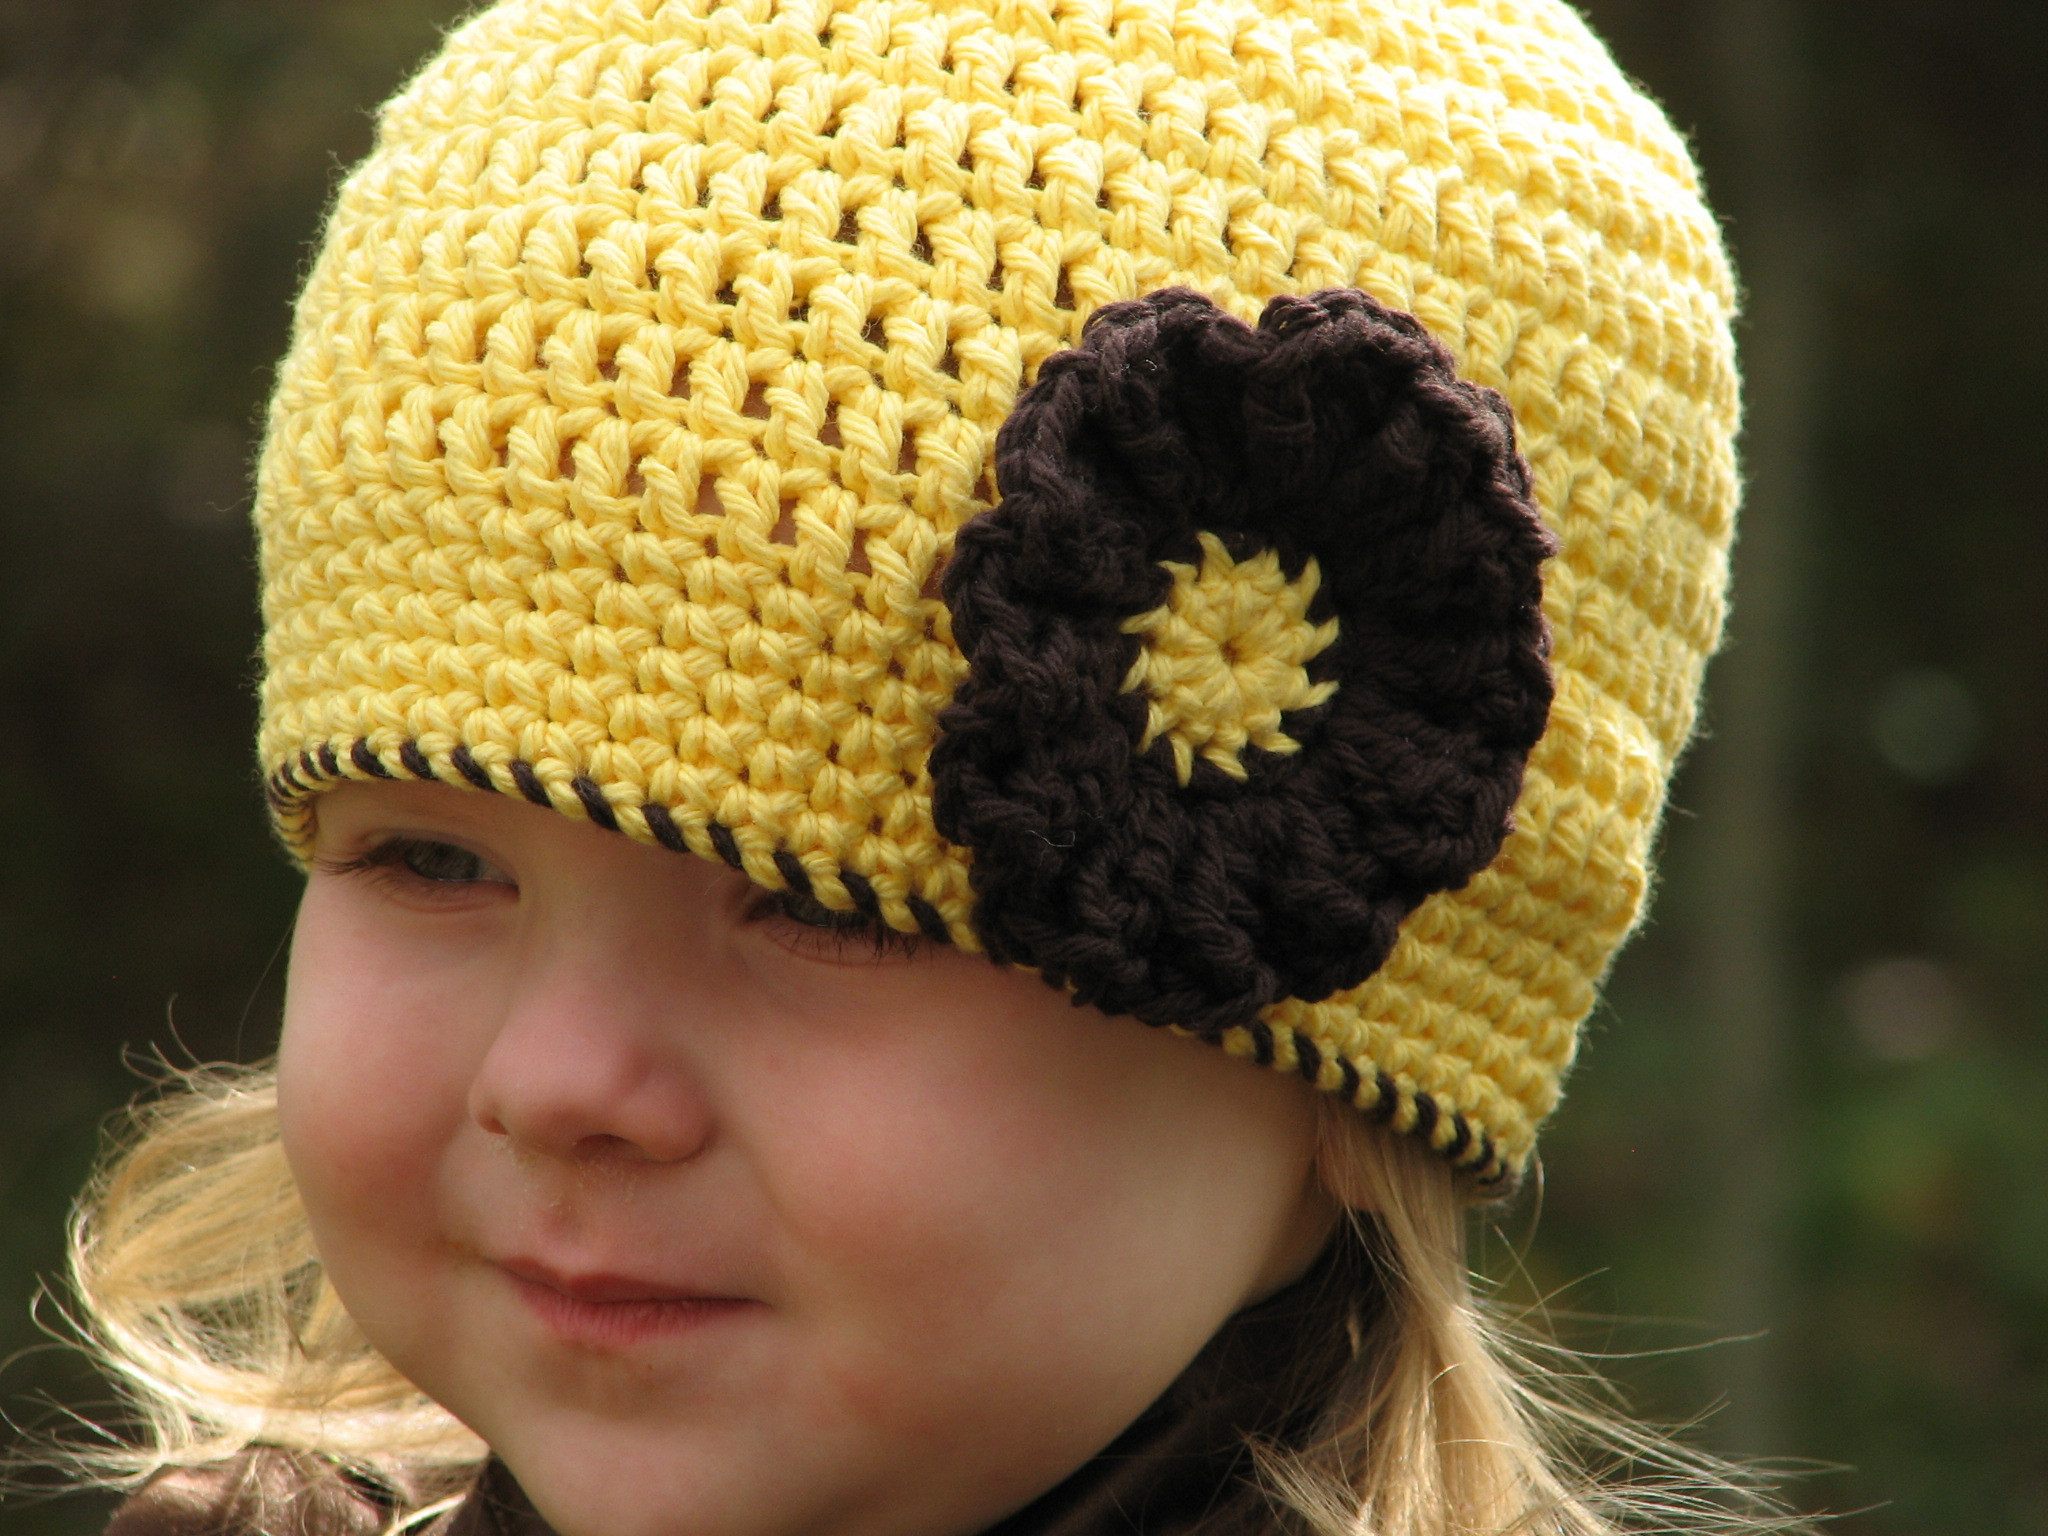 Best Of Sunshine Beanie Crochet Pattern Giveaway Ambassador Simple Beanie Crochet Pattern Of Innovative 50 Ideas Simple Beanie Crochet Pattern